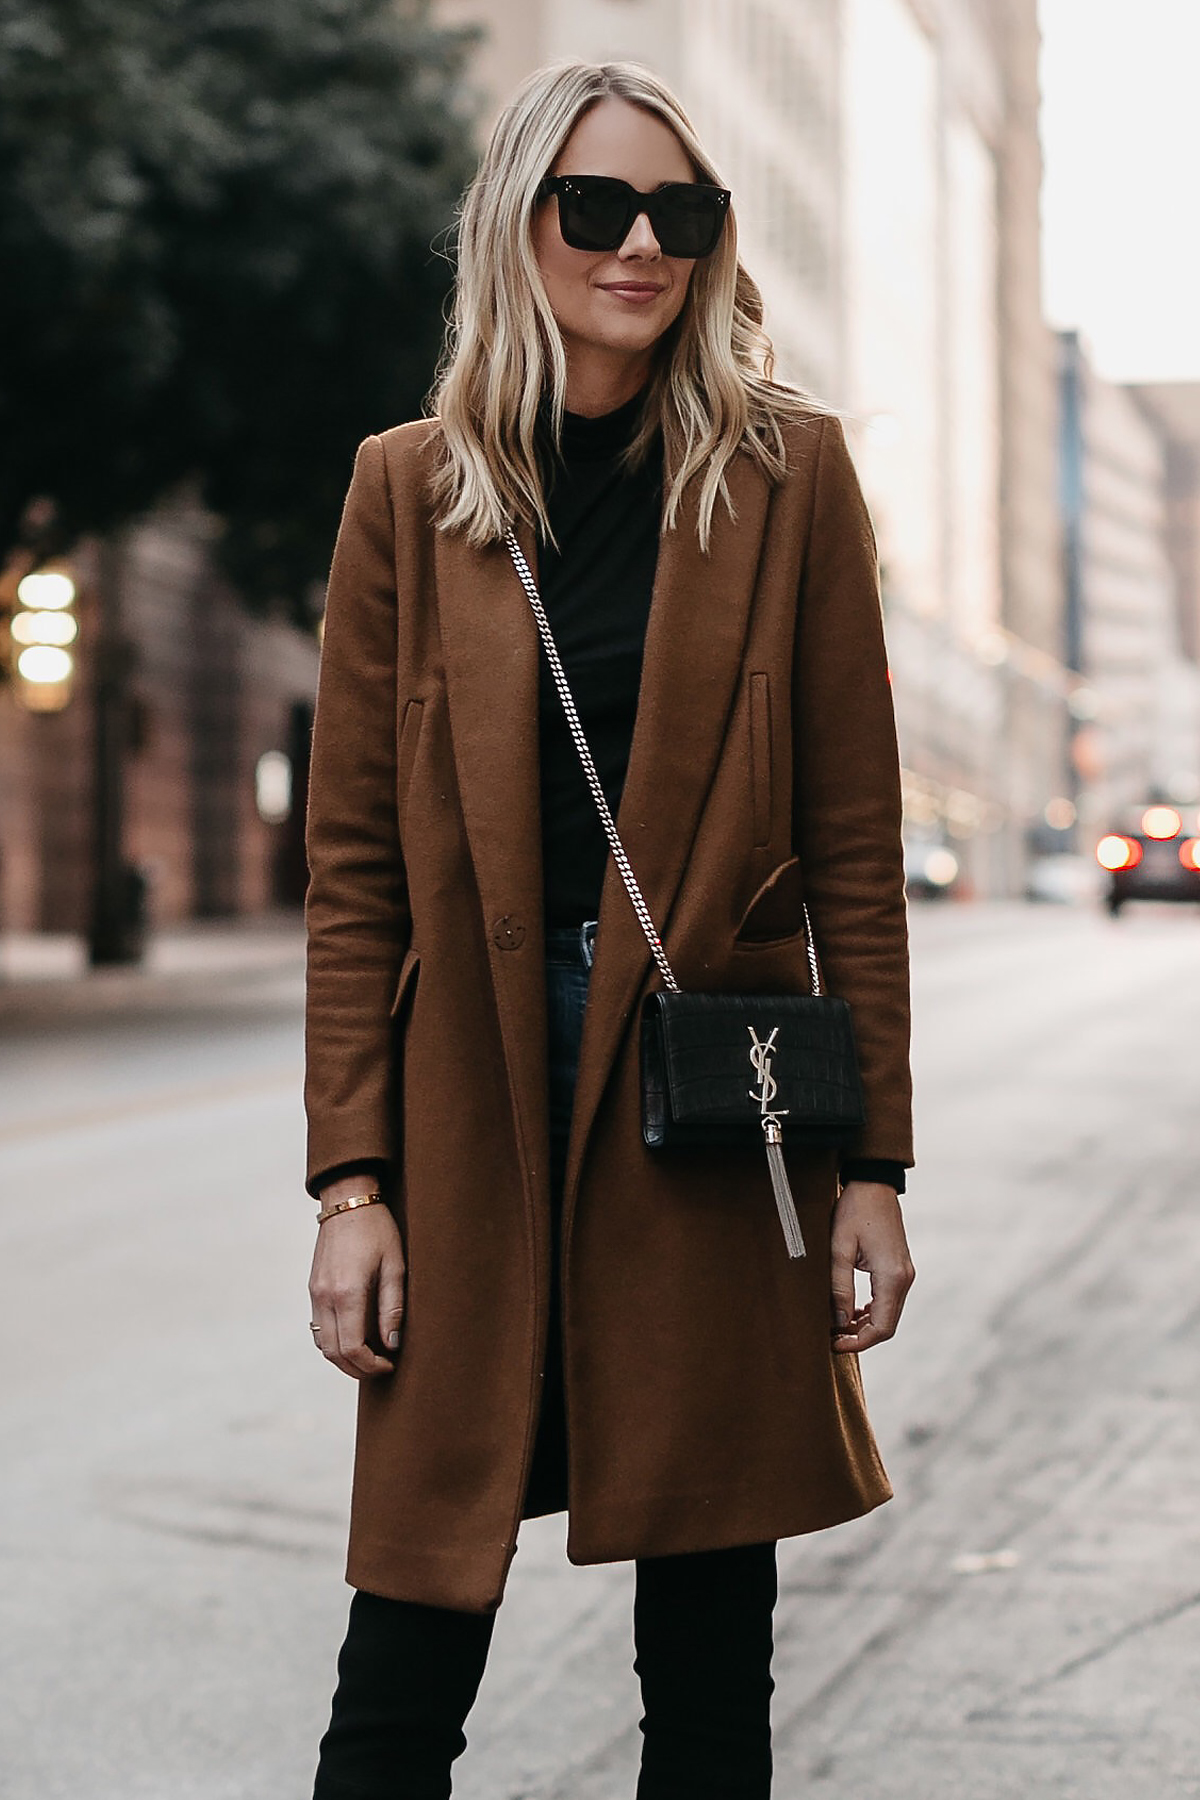 Blonde Woman Wearing Camel Wool Coat Saint Laurent Monogram Tassel Crossbody Fashion Jackson Dallas Blogger Fashion Blogger Street Style